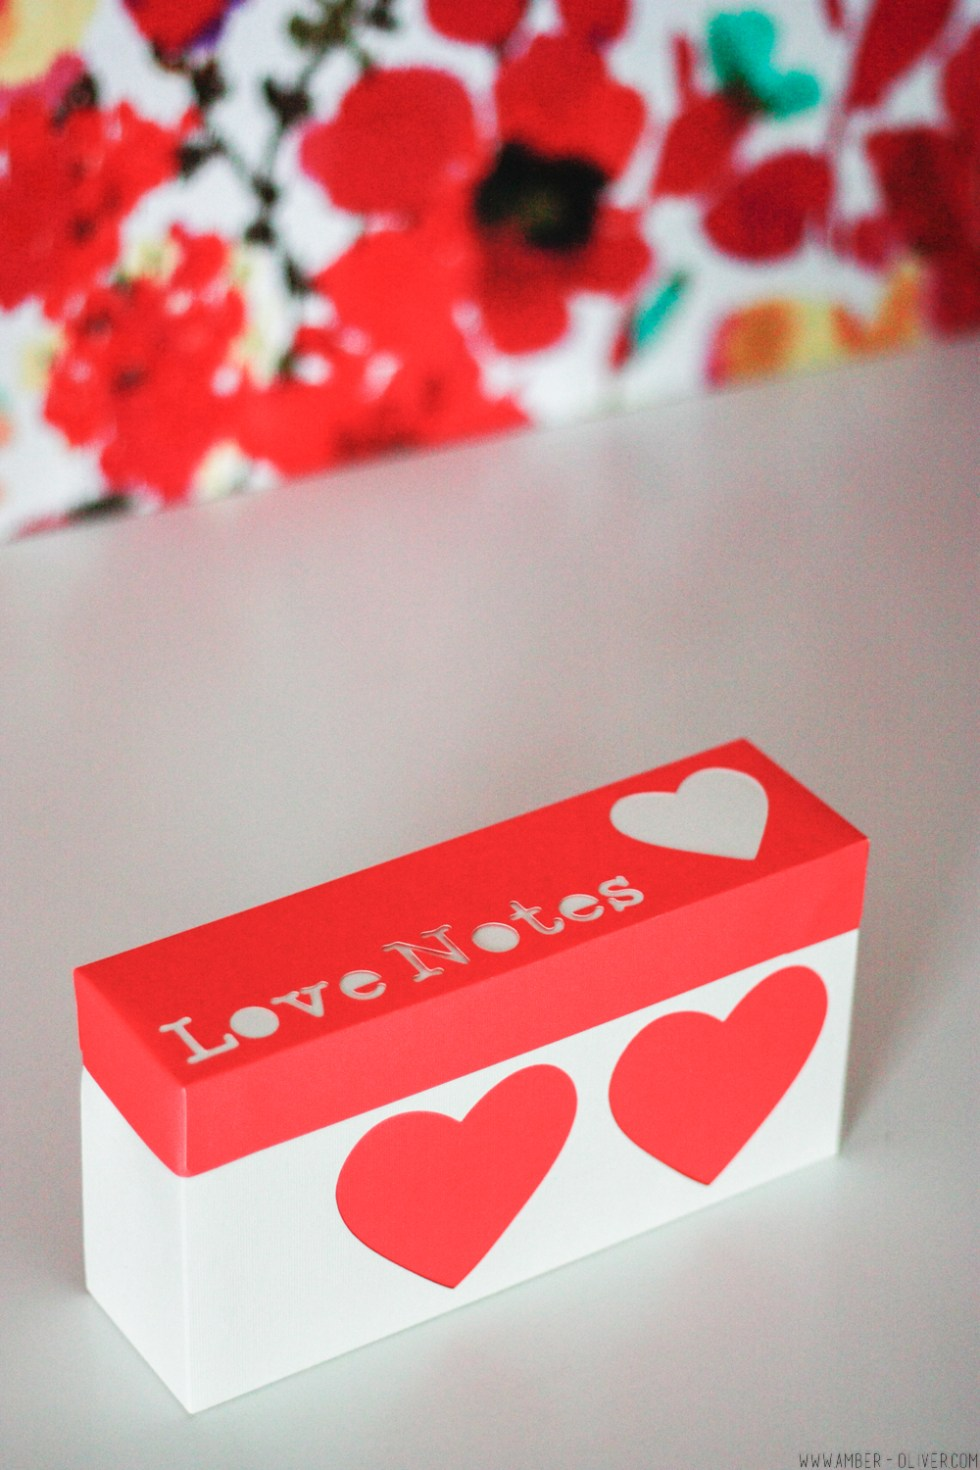 DIY Love Notes Box made using the Cricut Explore Air 2